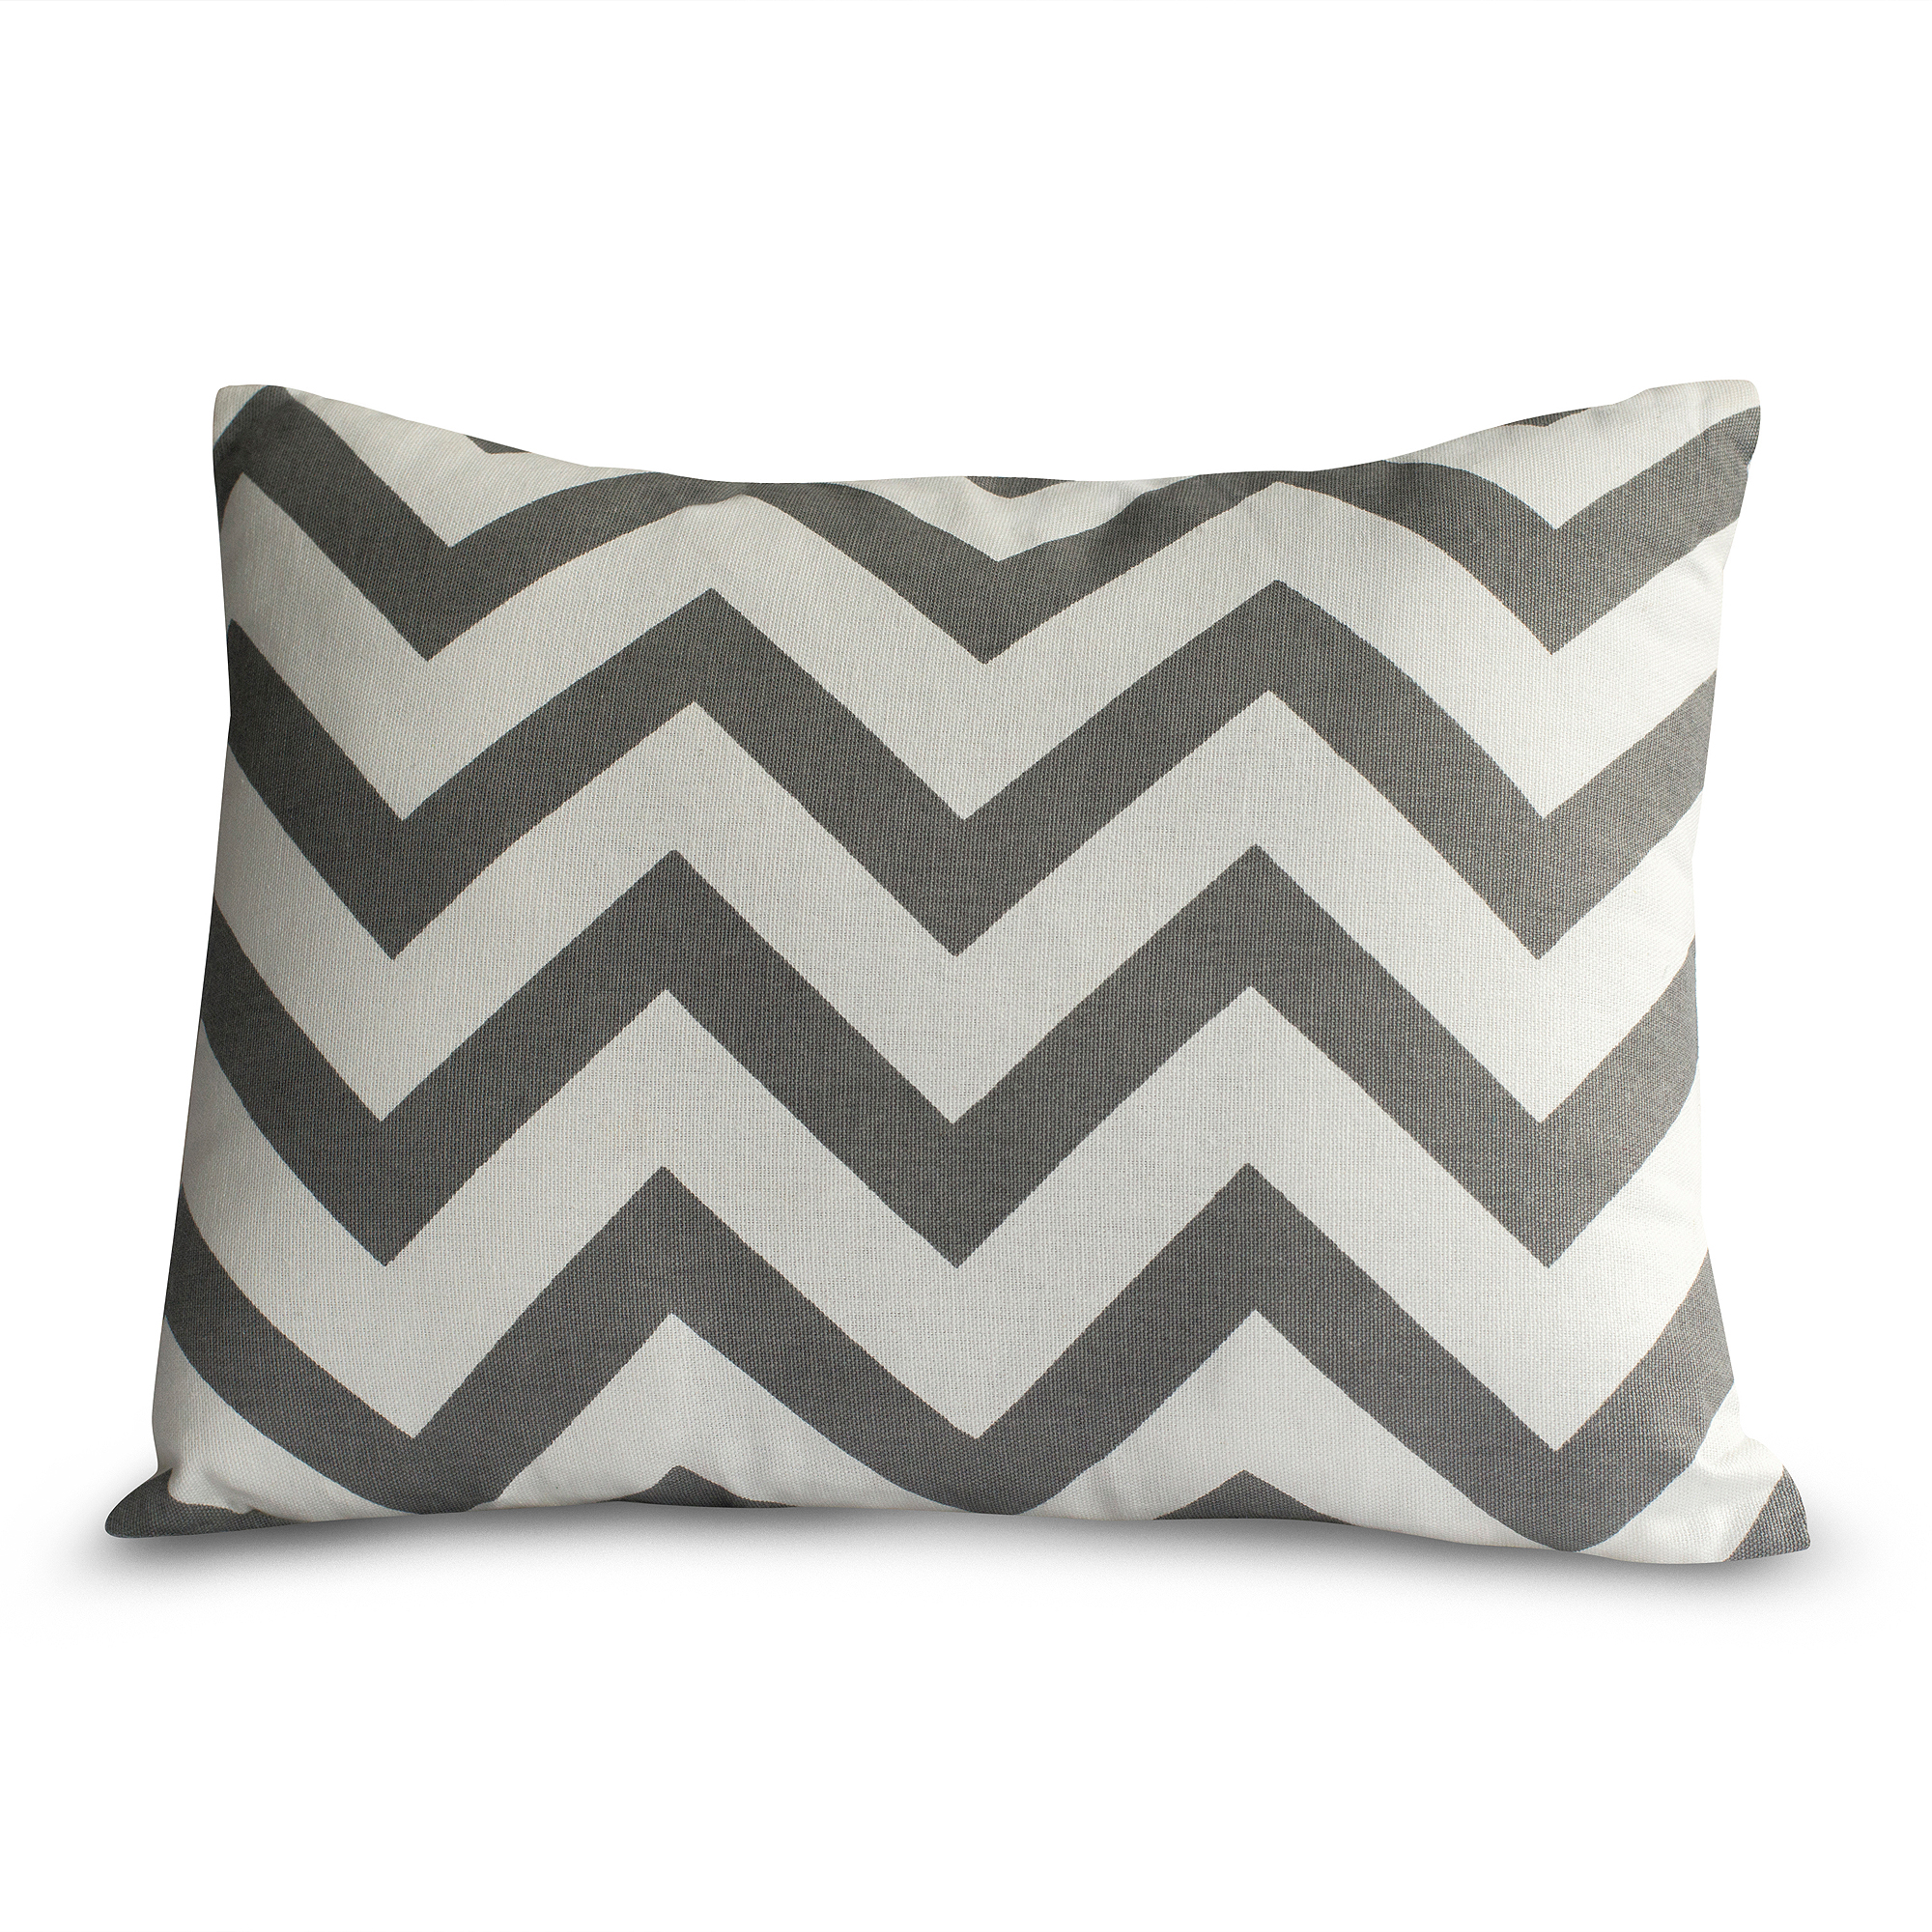 9 by Novogratz Pattern Play Decorative Pillow, Grey/Blue